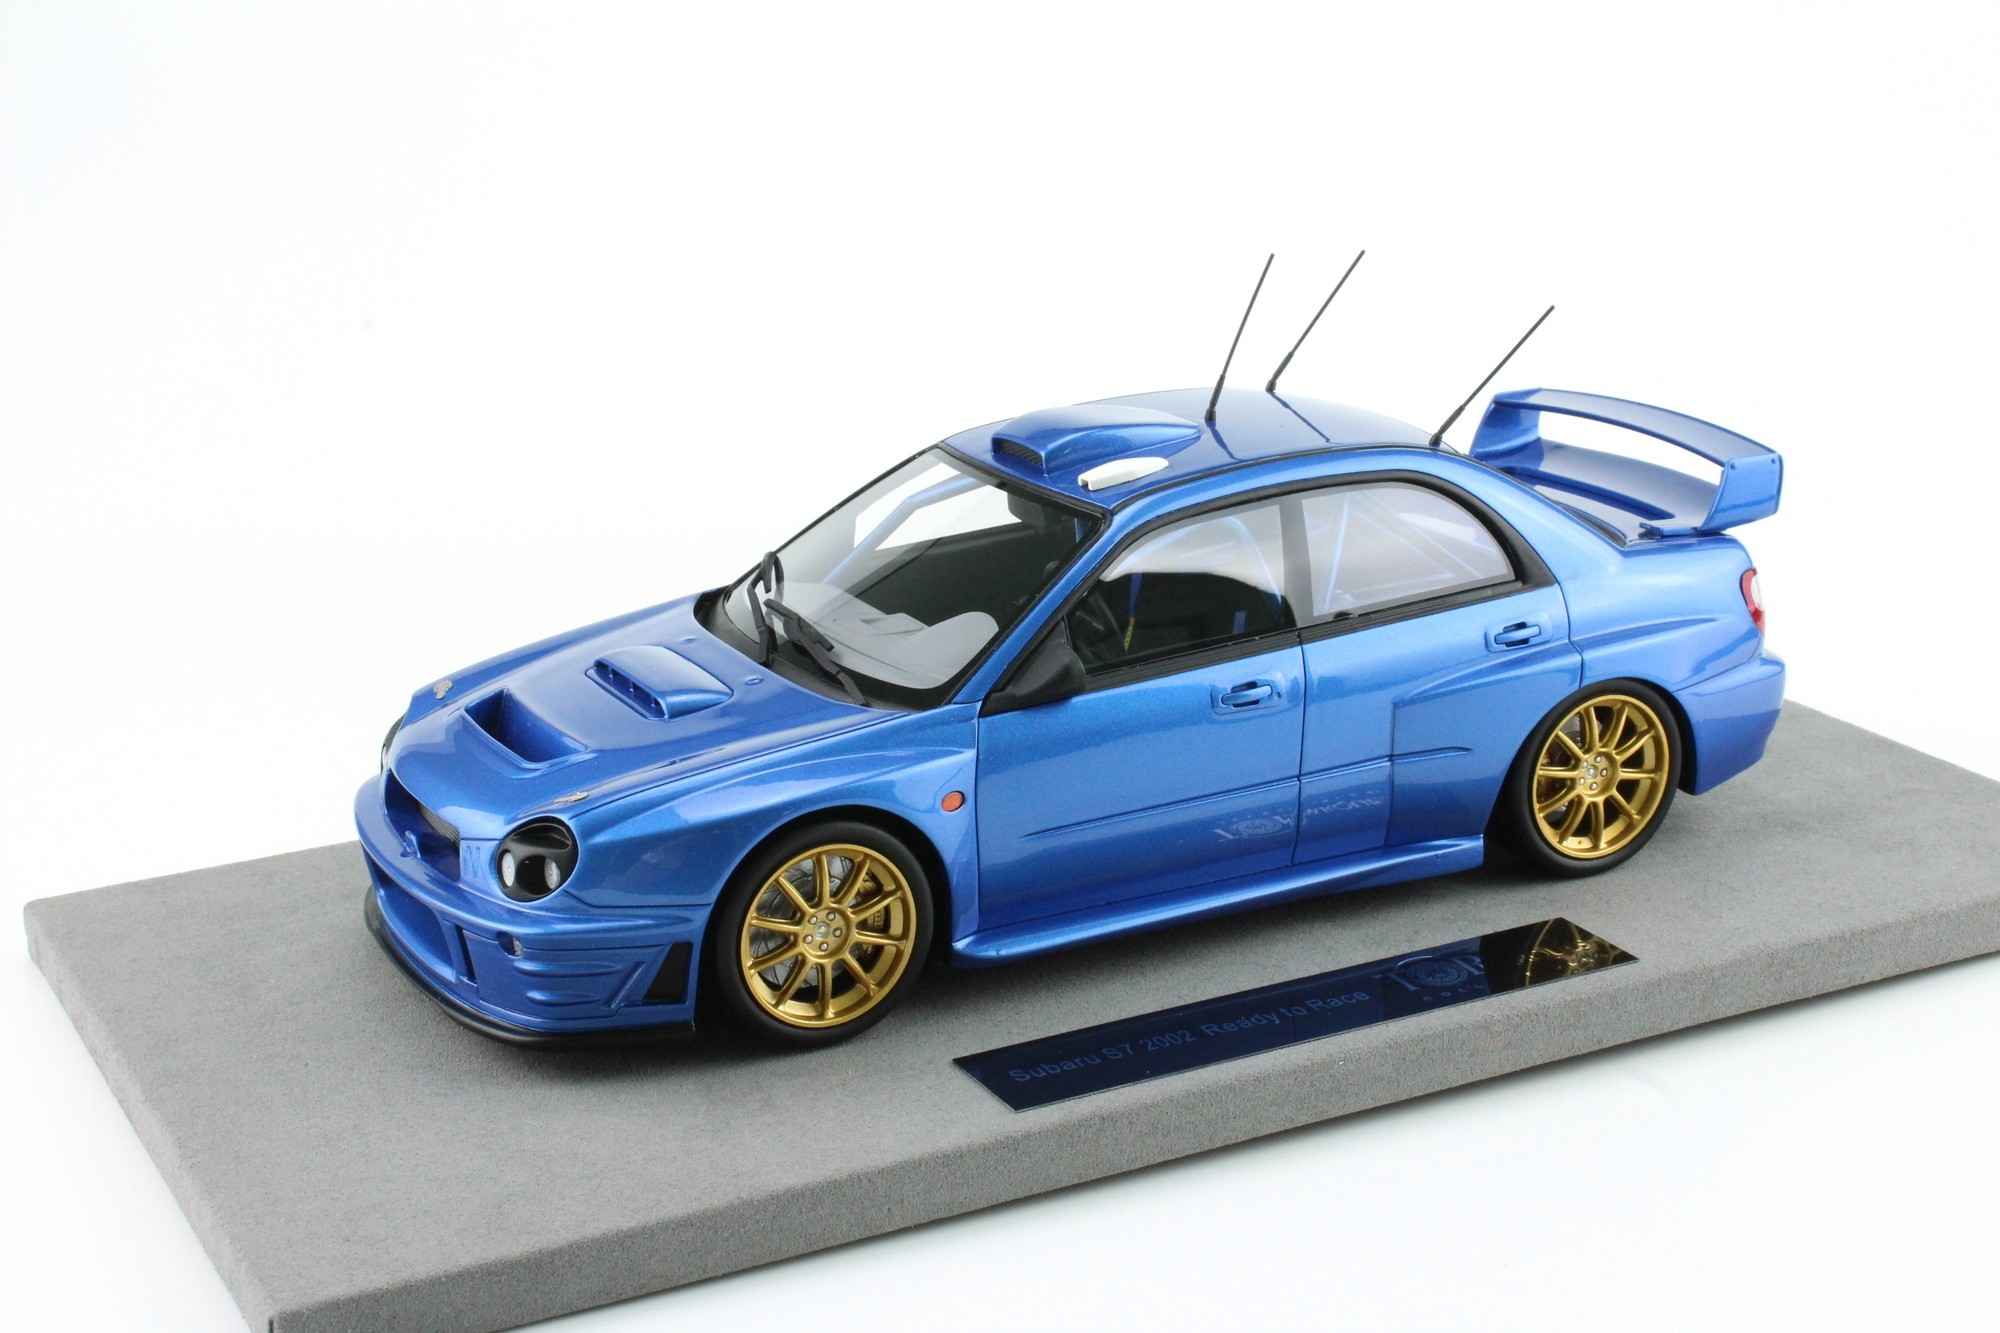 Top Marques Collectibles Subaru Impreza S7 555 Wrt Without Decals Tommi M 228 Kinen Kaj Lindstr 246 M